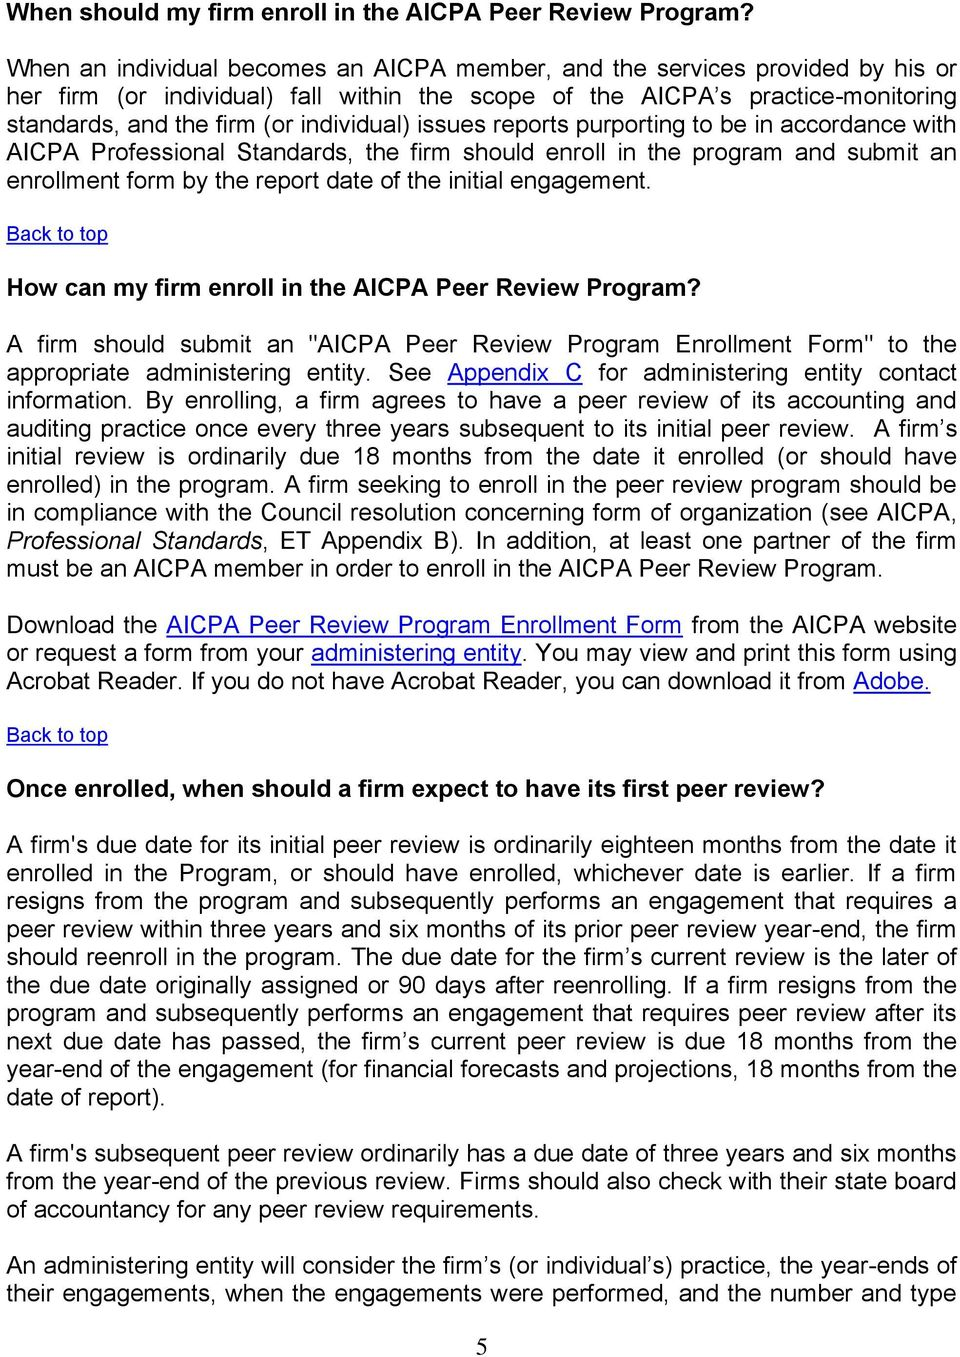 individual) issues reports purporting to be in accordance with AICPA Professional Standards, the firm should enroll in the program and submit an enrollment form by the report date of the initial